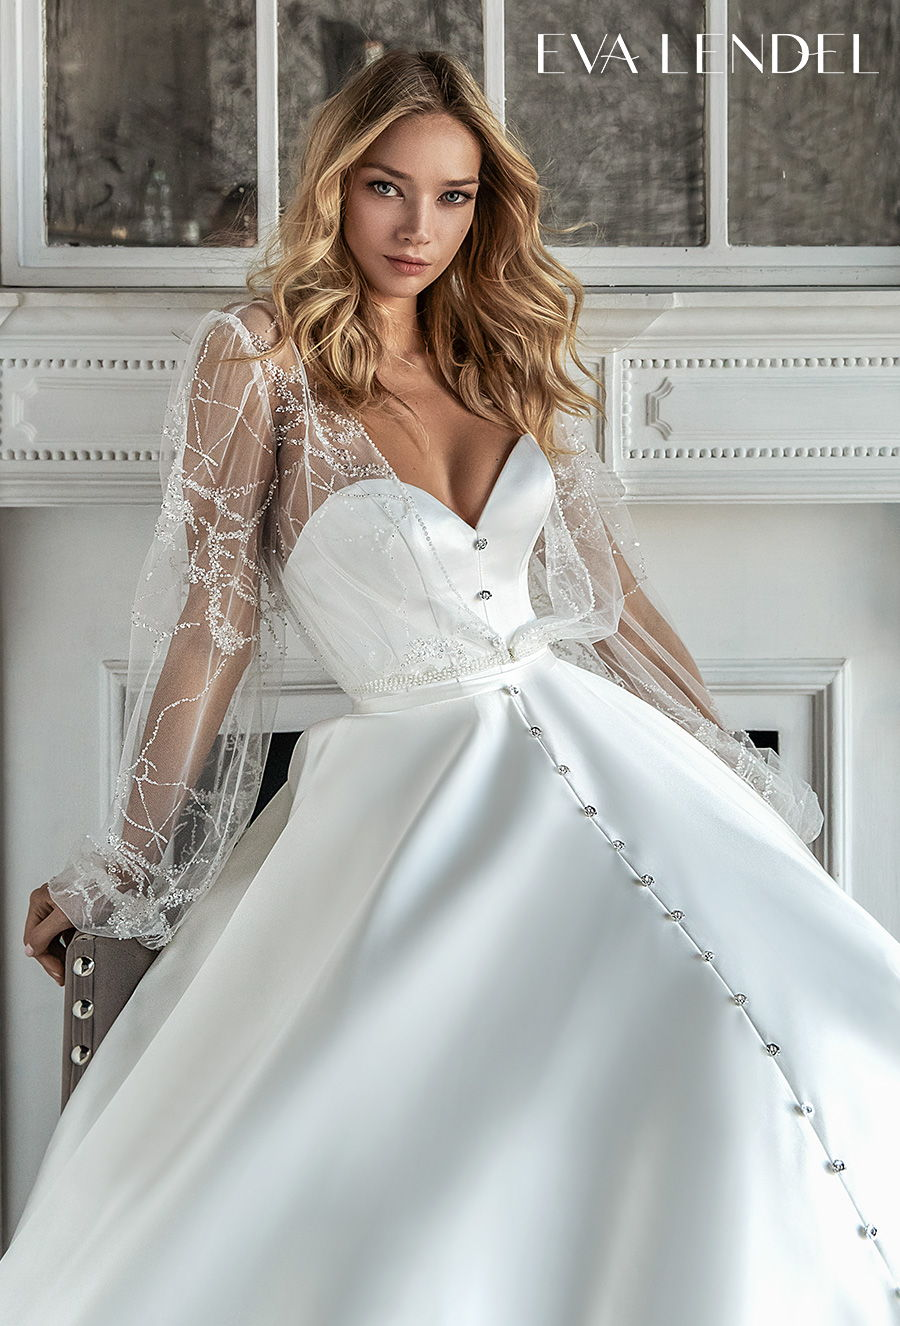 eva lendel 2021 bridal long bishop sleeves sweetheart neckline simple button front romantic a  line wedding dress with pockets mid back royal train (diora) zv